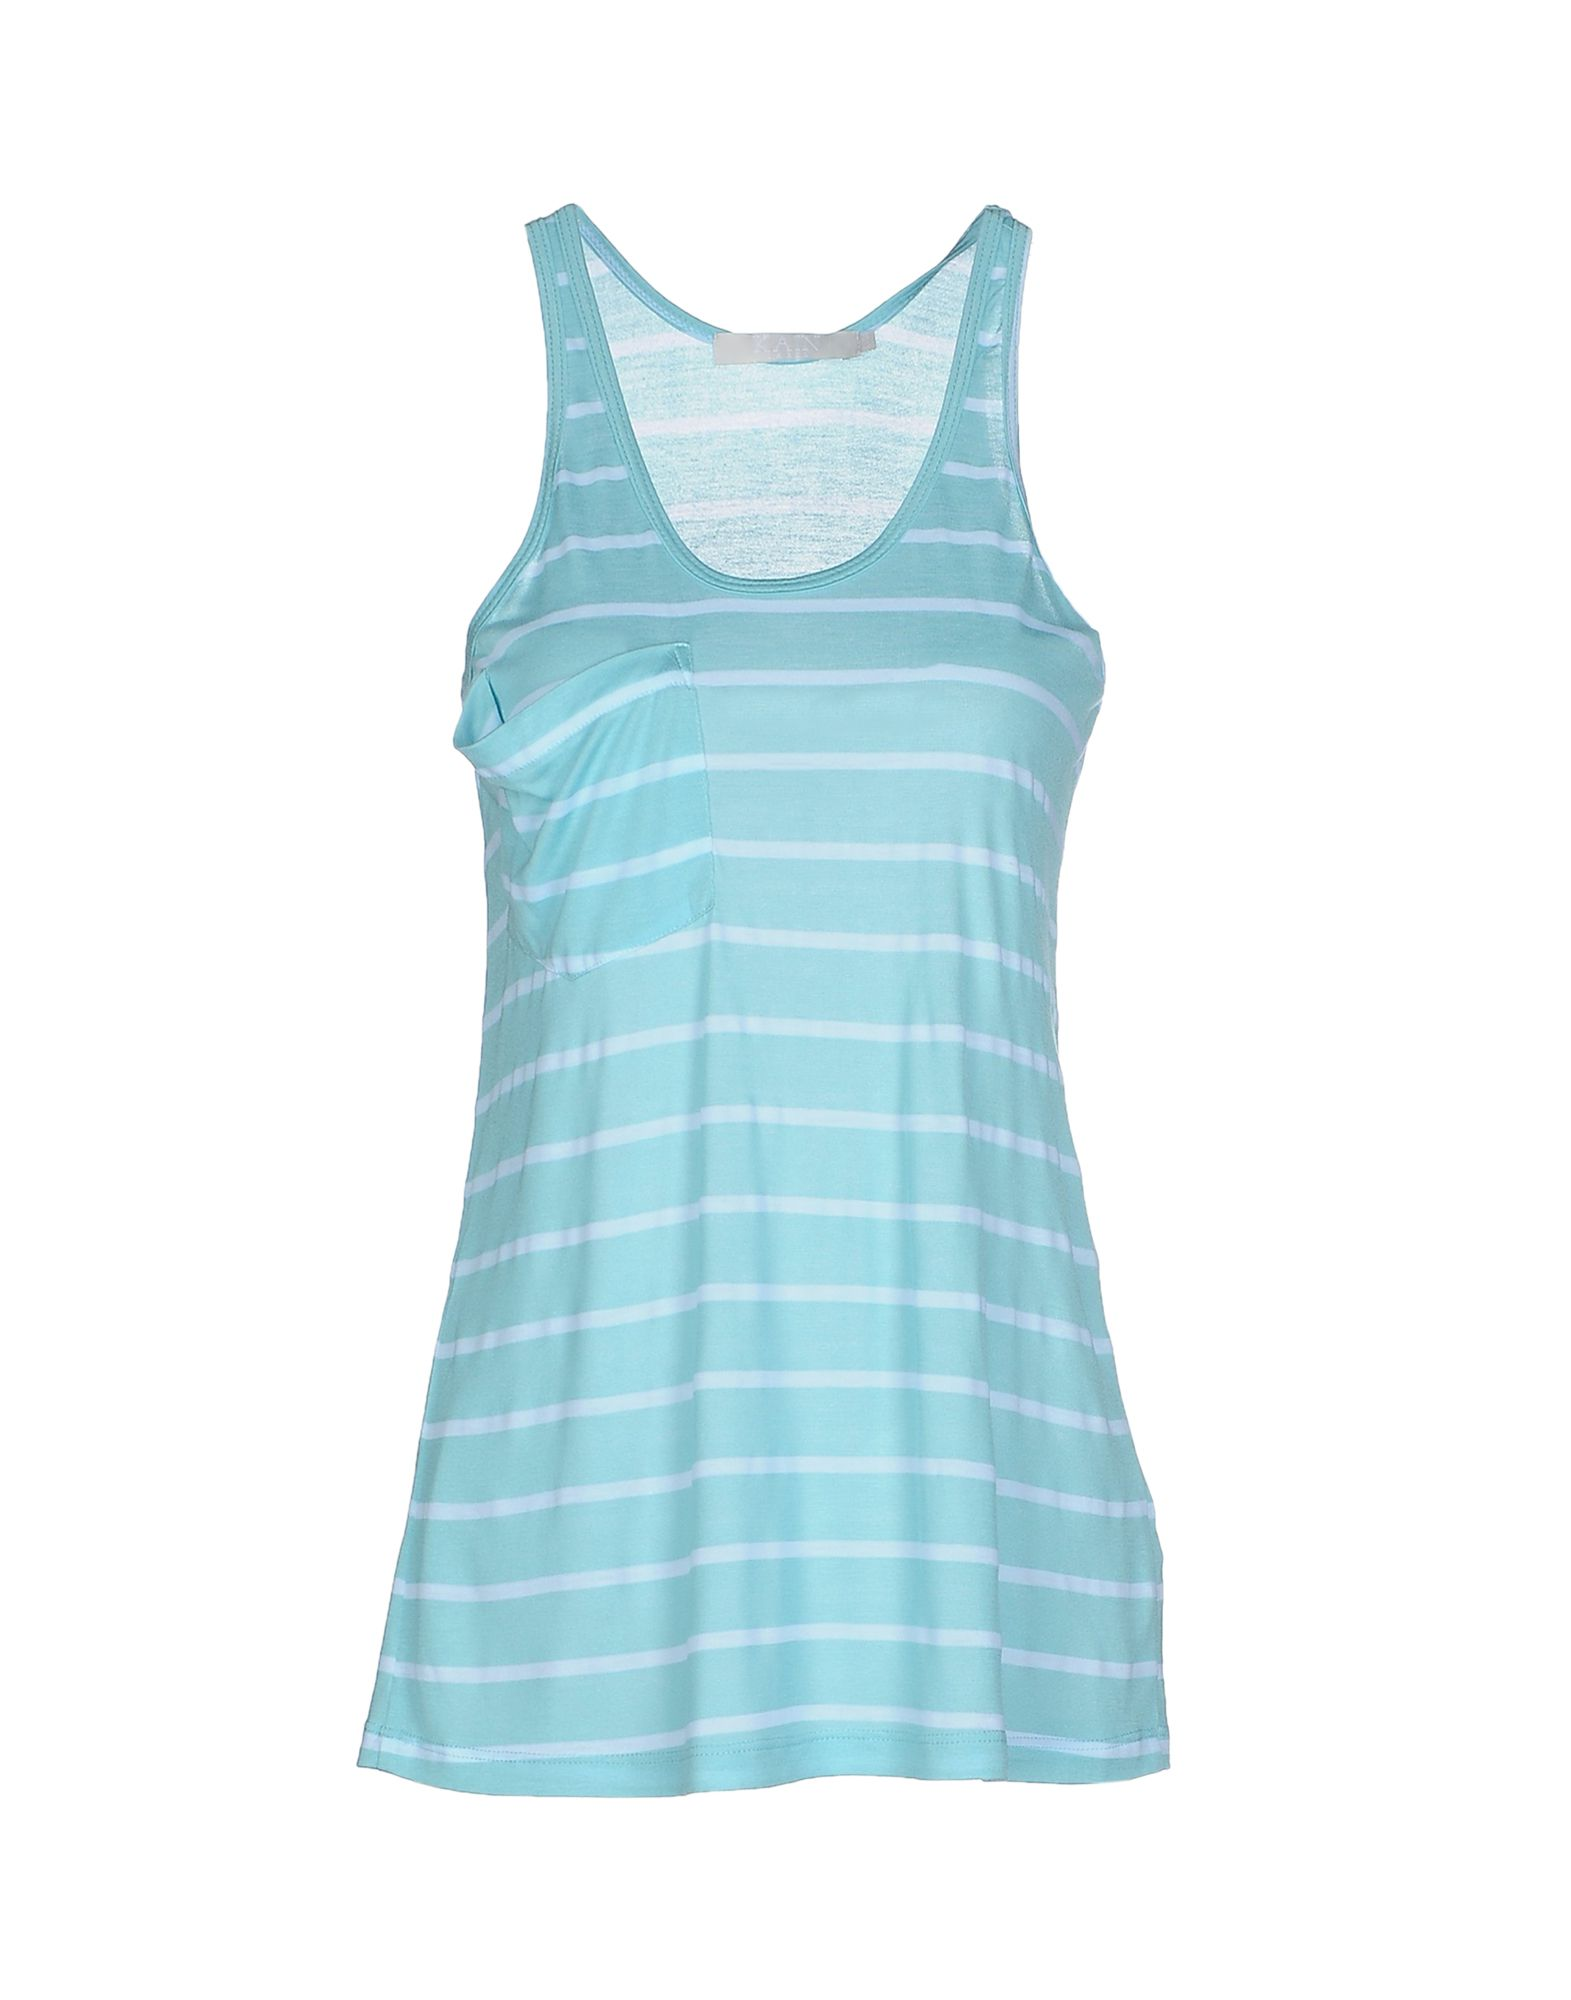 KAIN Tank Top in Turquoise